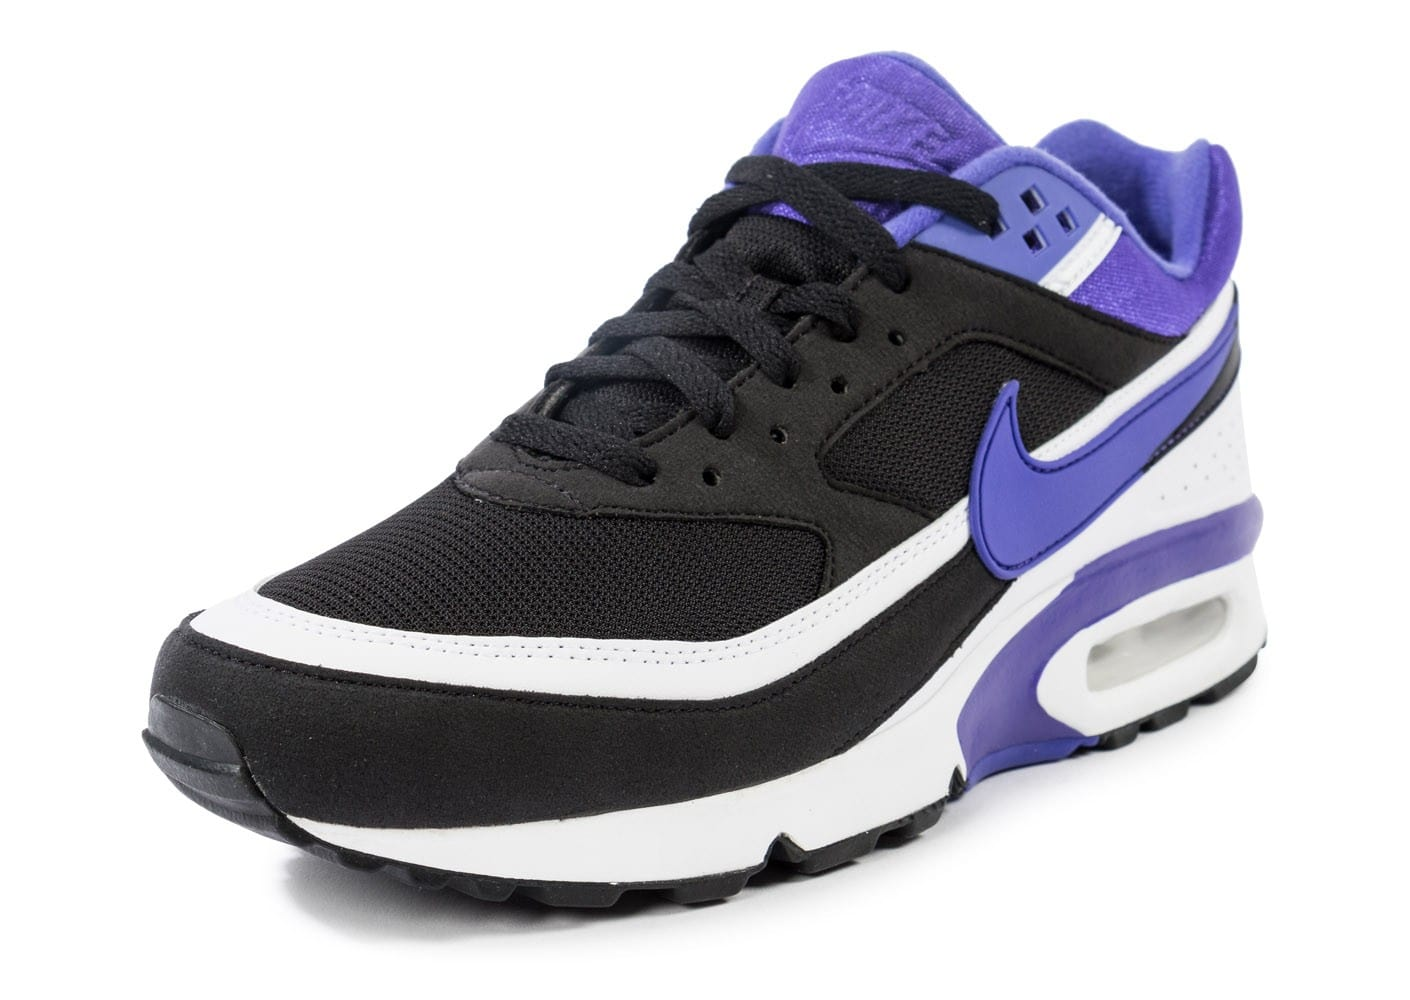 official photos 3bd89 8f656 ... chaussures nike air max bw og persian violet vue avant